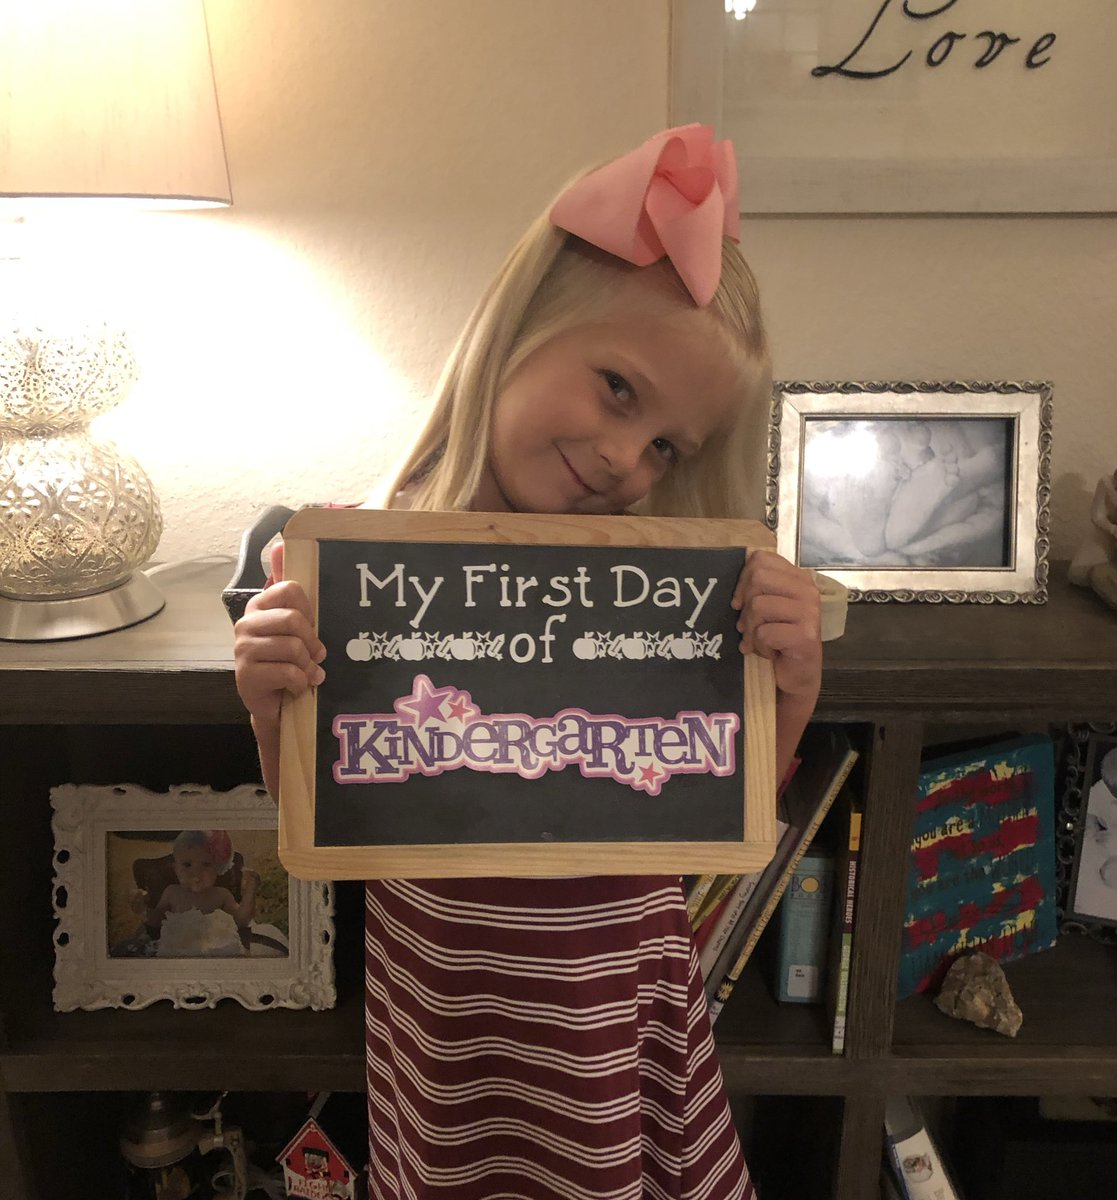 She decided to be fashionably late his year- First day of Kindergarten! #GESshineon #back2GCISD #WeAreGCISD